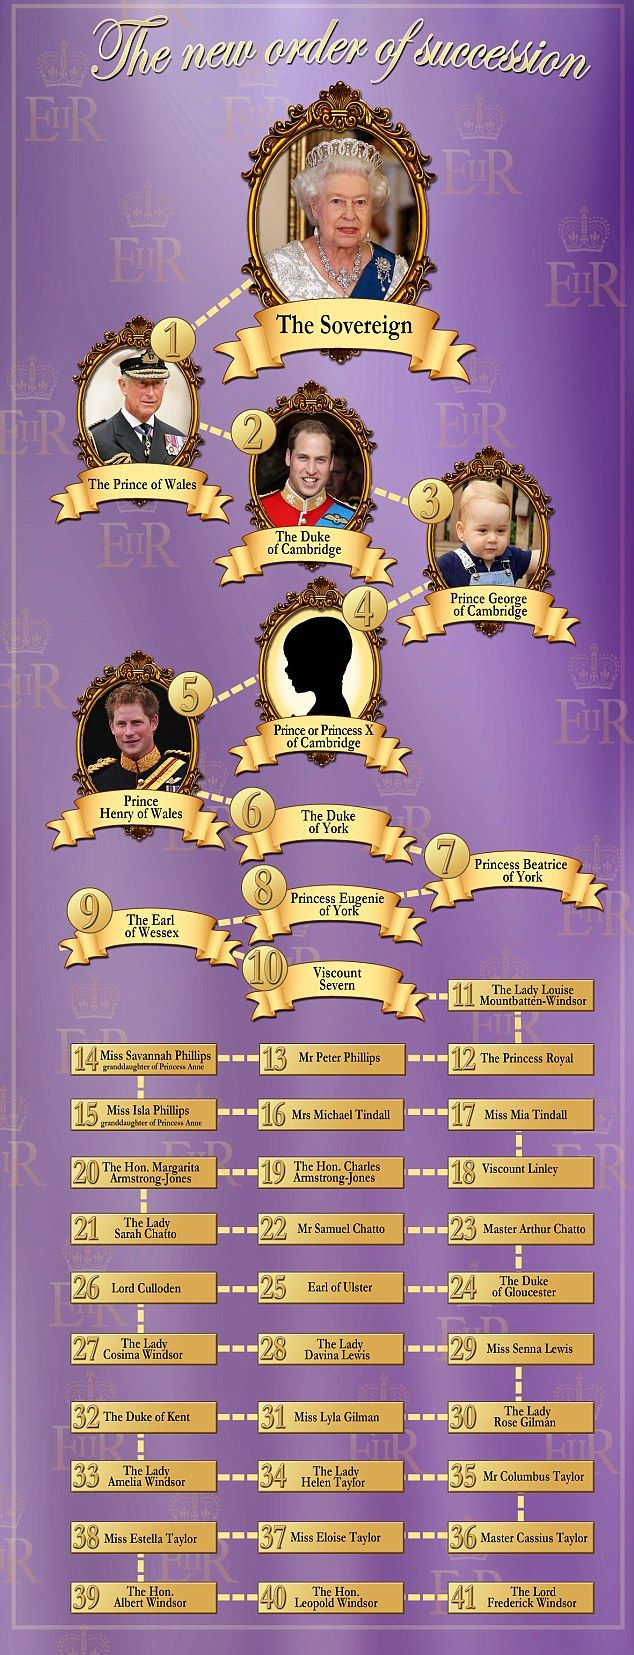 Prince Harry will be fifth in line to the throne when Kate gives birth to second child | Mail Online